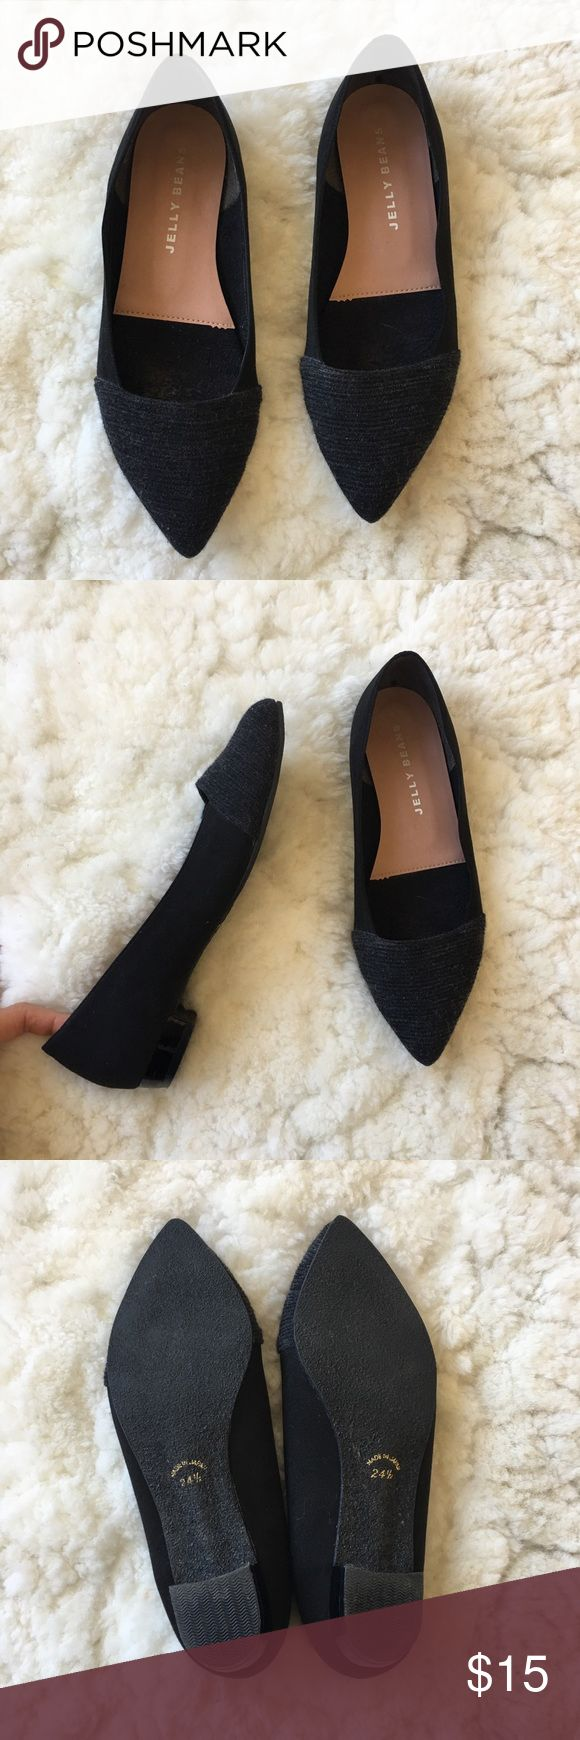 Japanese Black / Dark Grey Low Heels Jelly Beans 1-inch flats. Soft black suede body with dark grey wrap. Gently worn. US size 8 (Japanese Size 24.5) Made in Japan. Jelly Beans Shoes Flats & Loafers